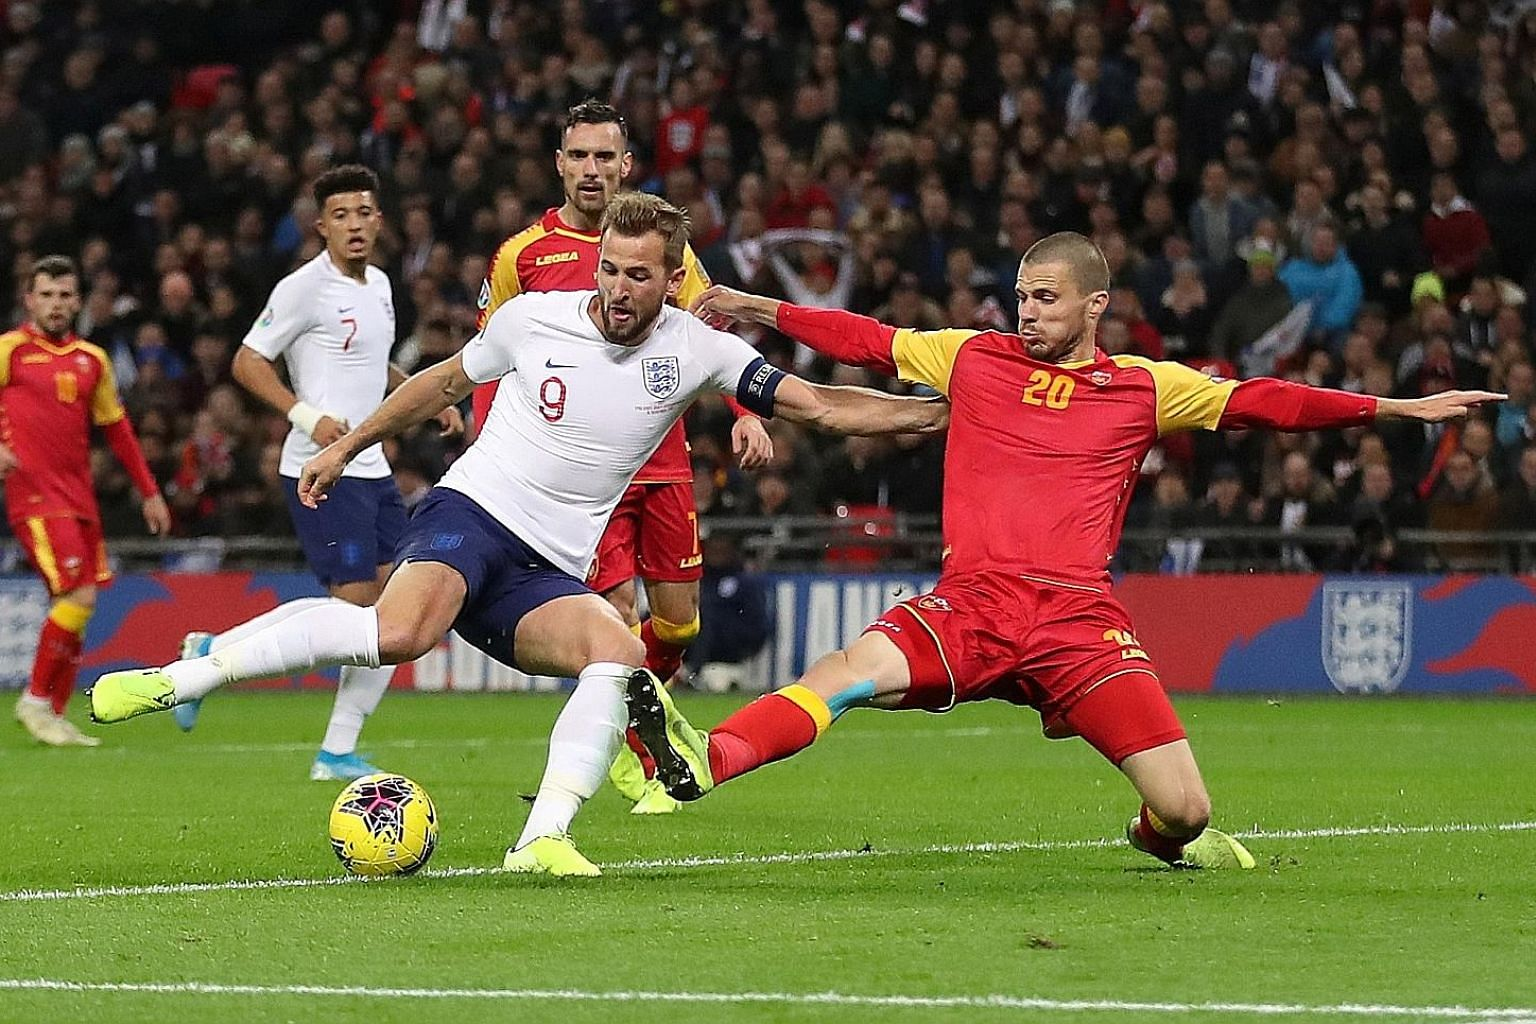 Harry Kane scoring England's fifth goal to complete his hat-trick against Montenegro in their World Cup qualifier at Wembley on Thursday. It was his 11th goal in seven Group A matches.